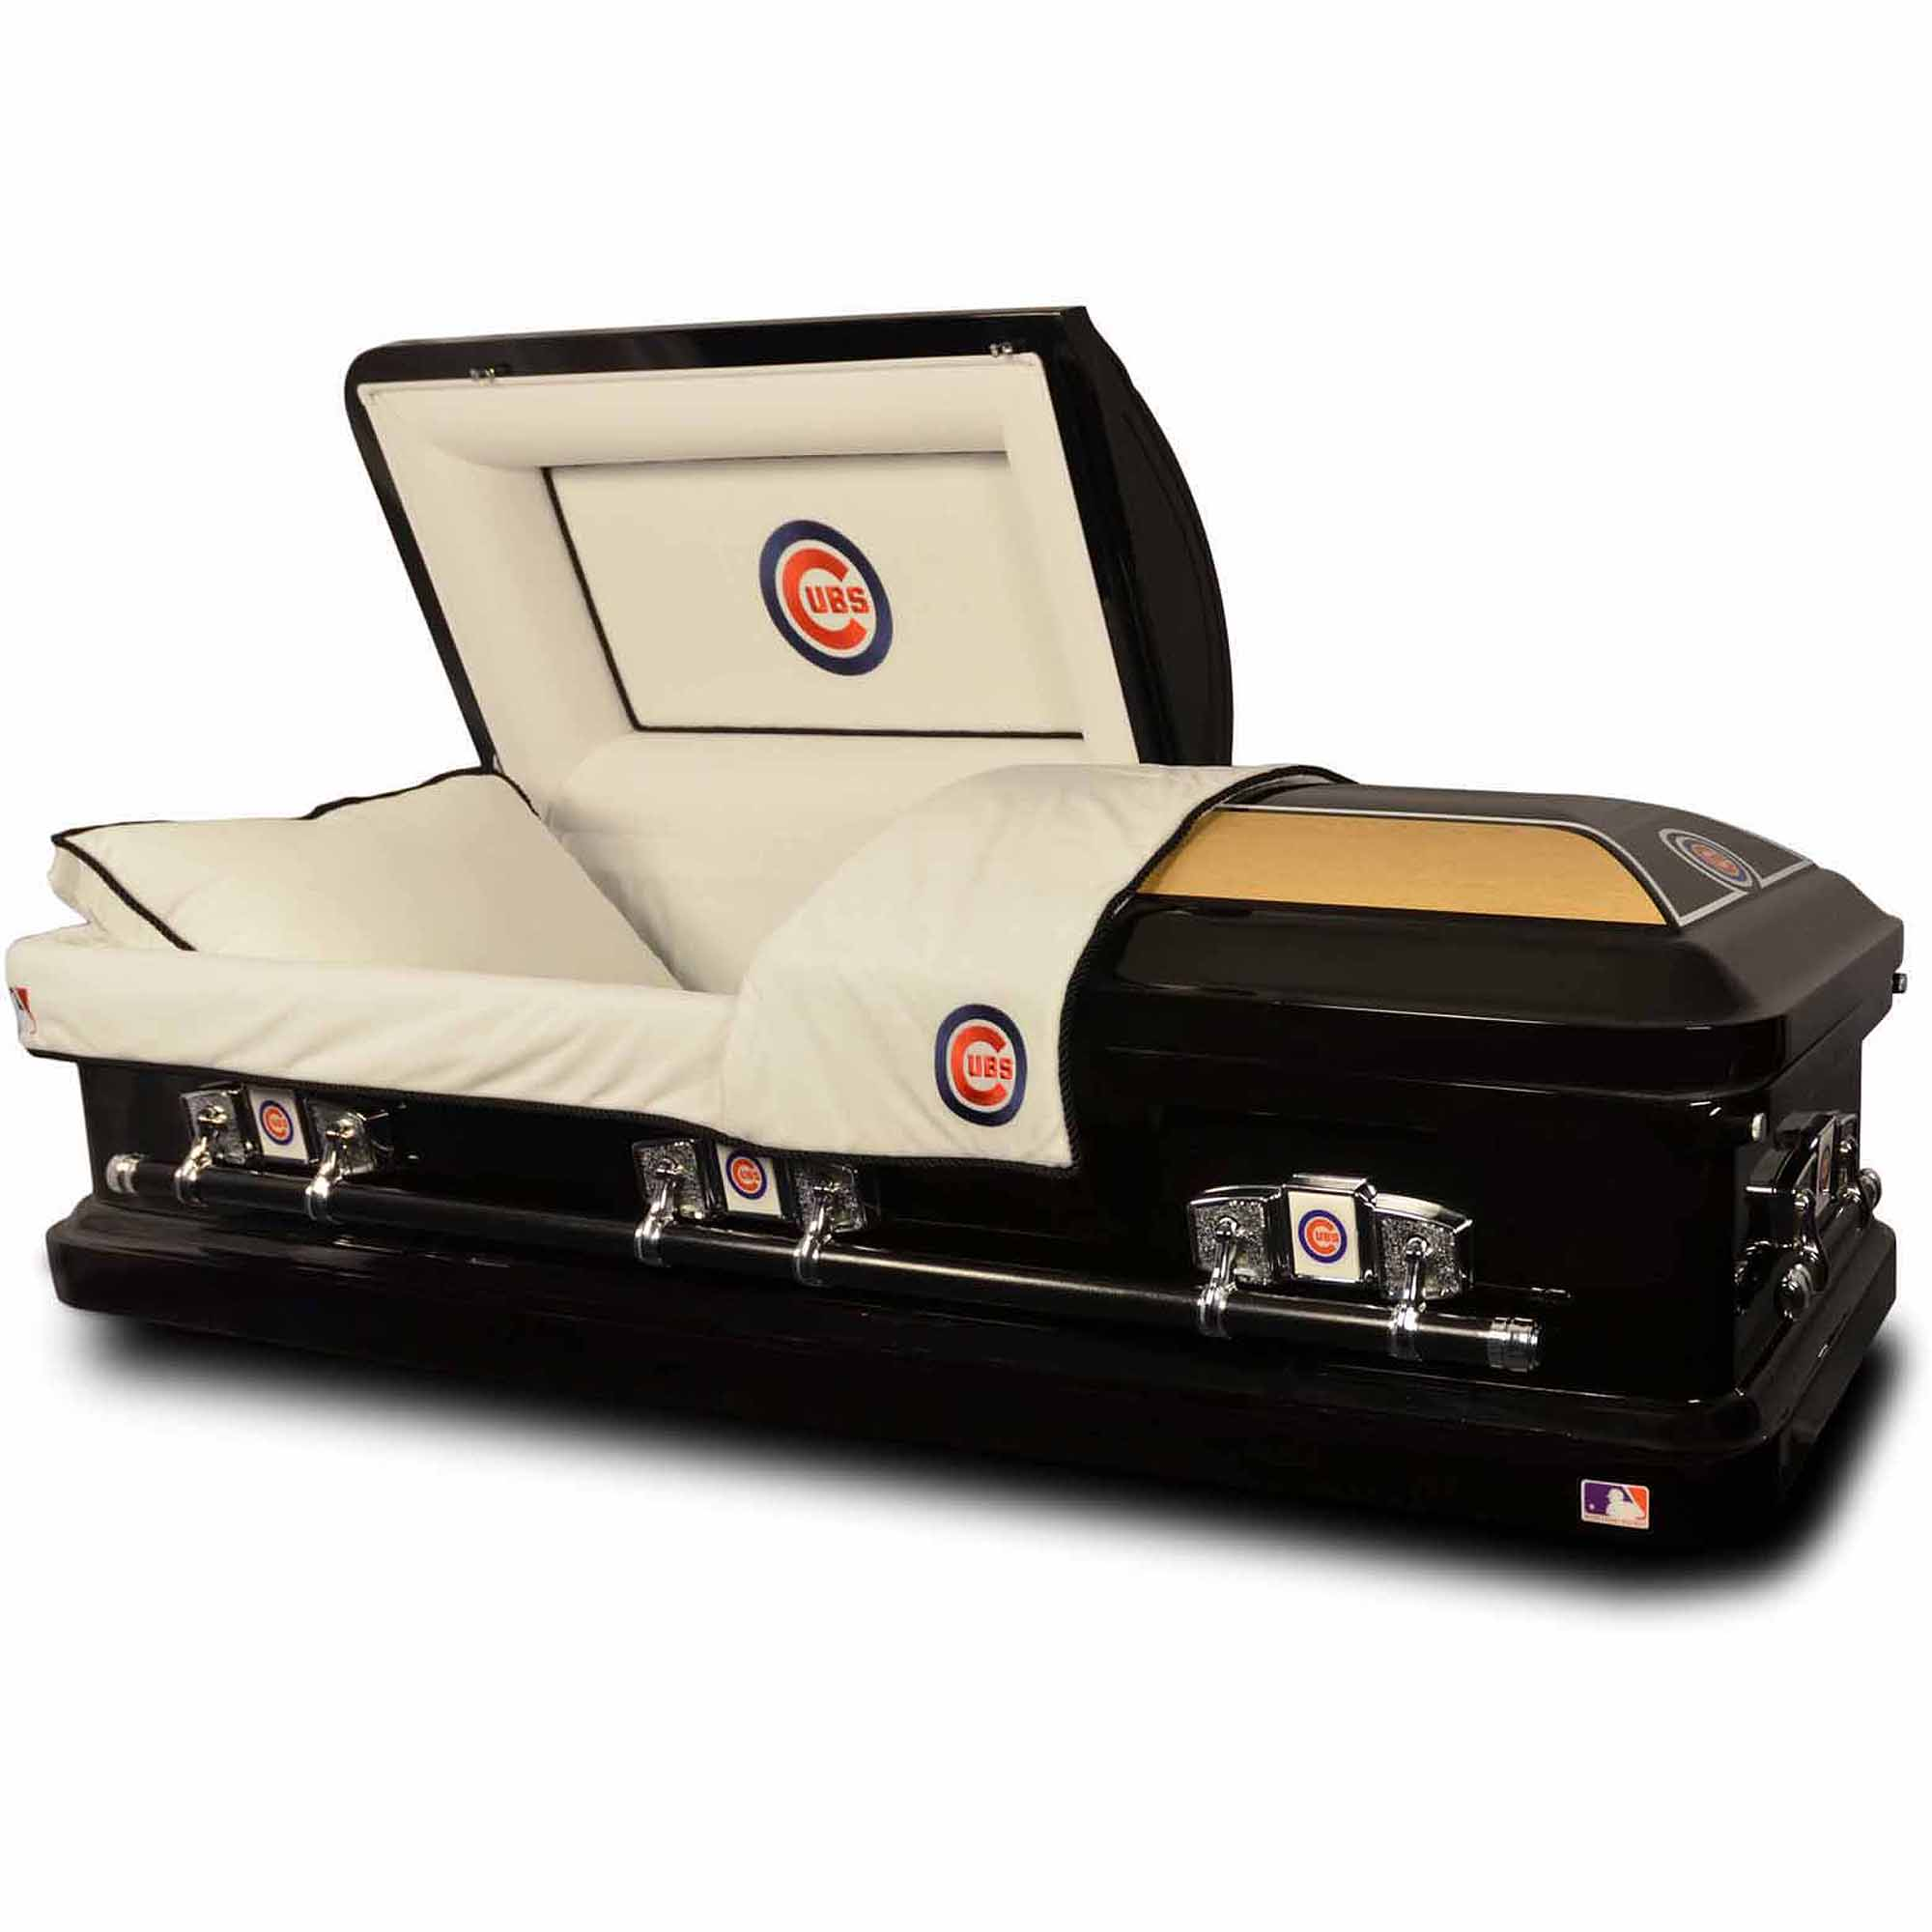 Official Major League Baseball Casket  Chicago Cubs   Walmart com Official Major League Baseball Casket  Chicago Cubs